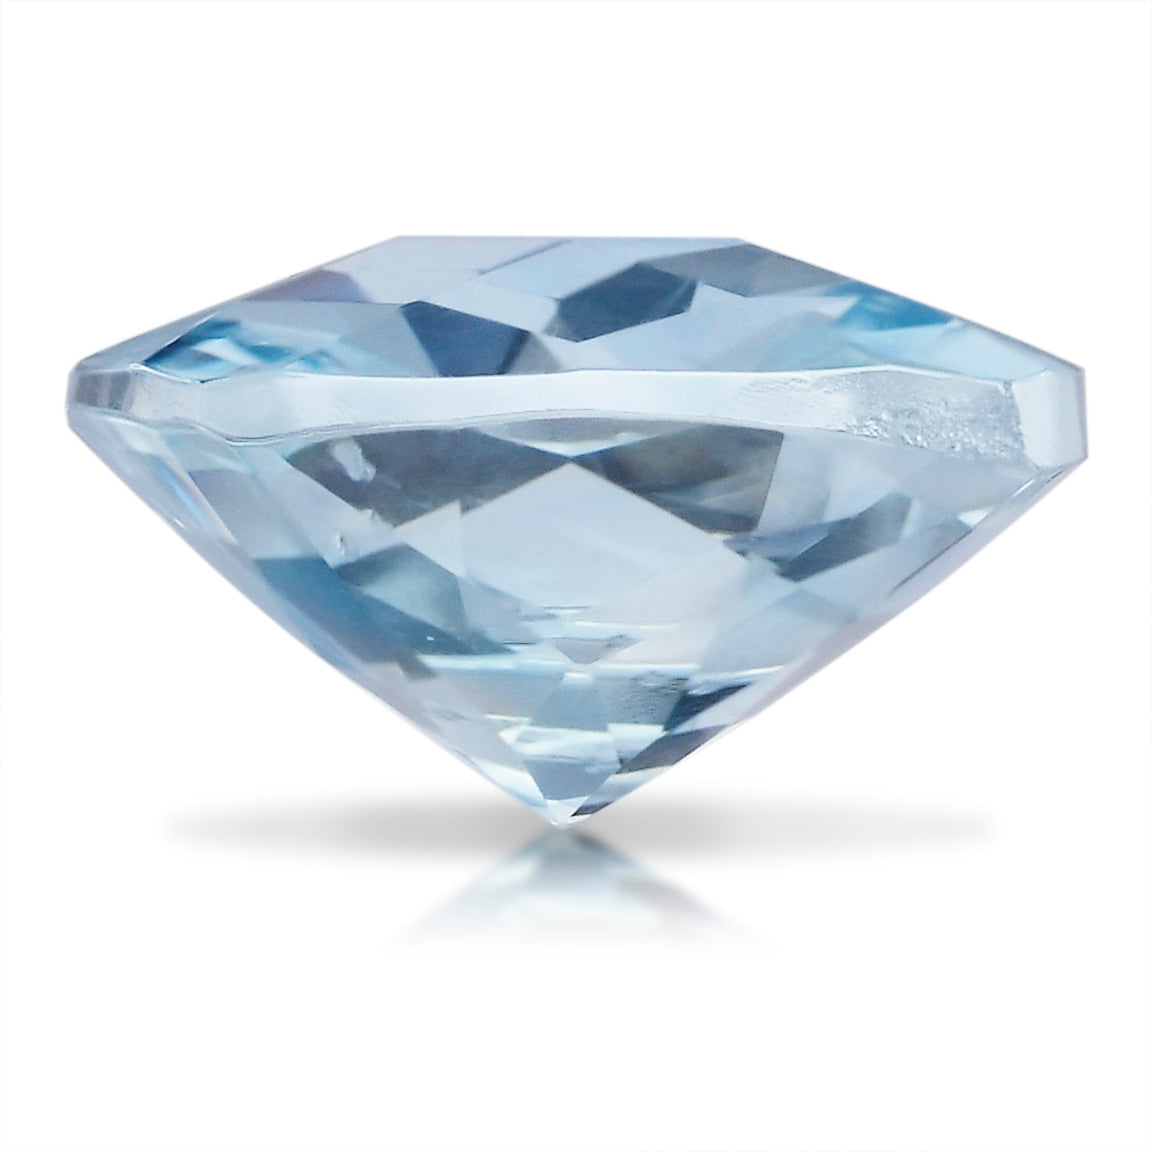 2.28 CARAT CUSHION NATURAL BLUE AQUAMARINE